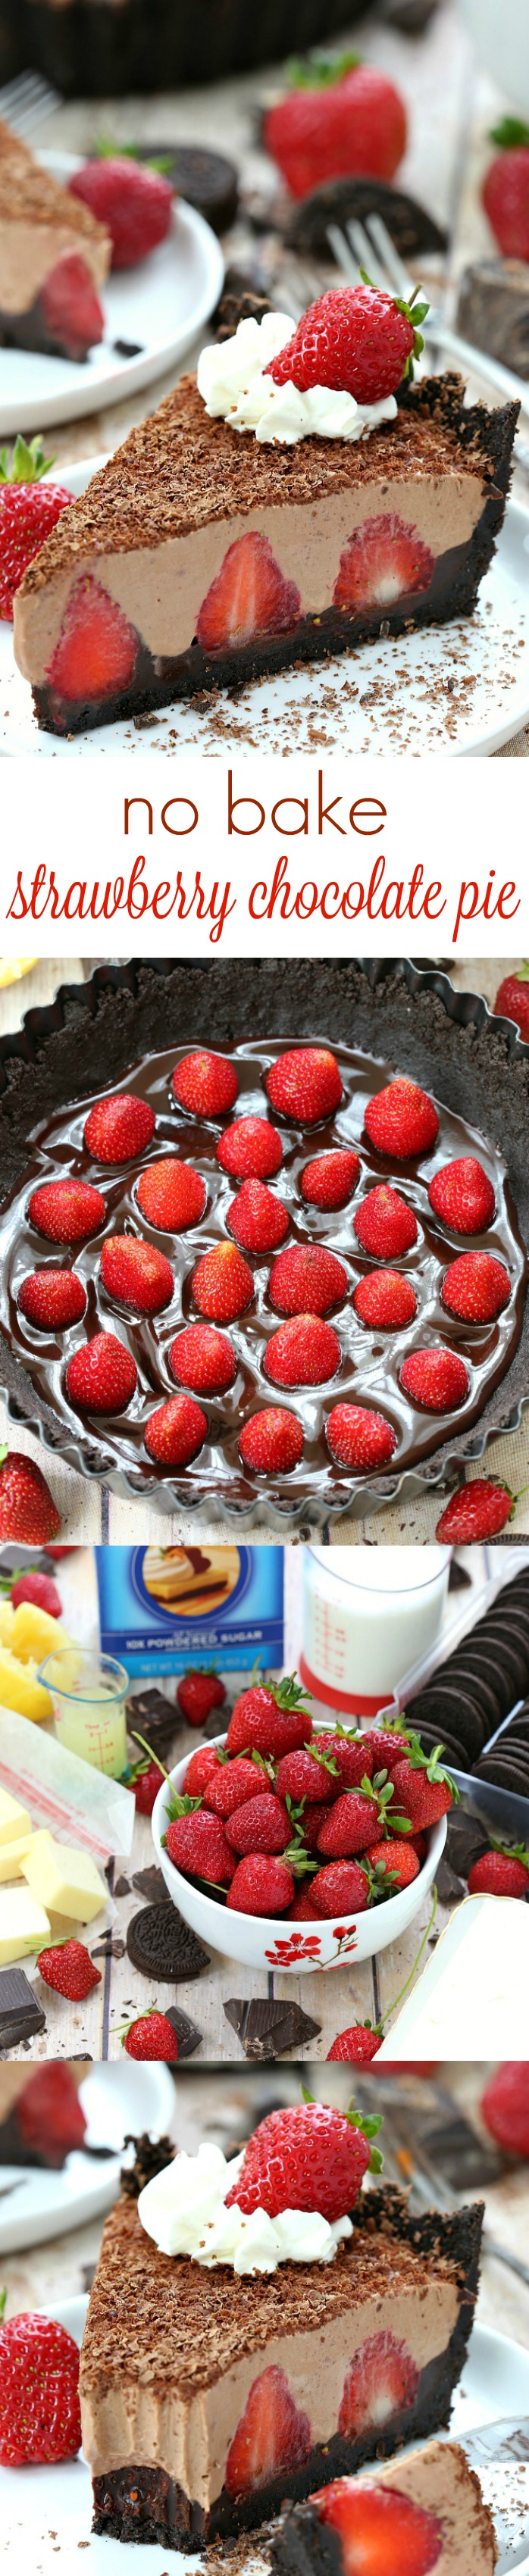 Chocolate crust, fresh strawberries, and a dreamy silky chocolate filling turn this easy and decadent no-bake strawberry chocolate pie into a showstopping dessert.